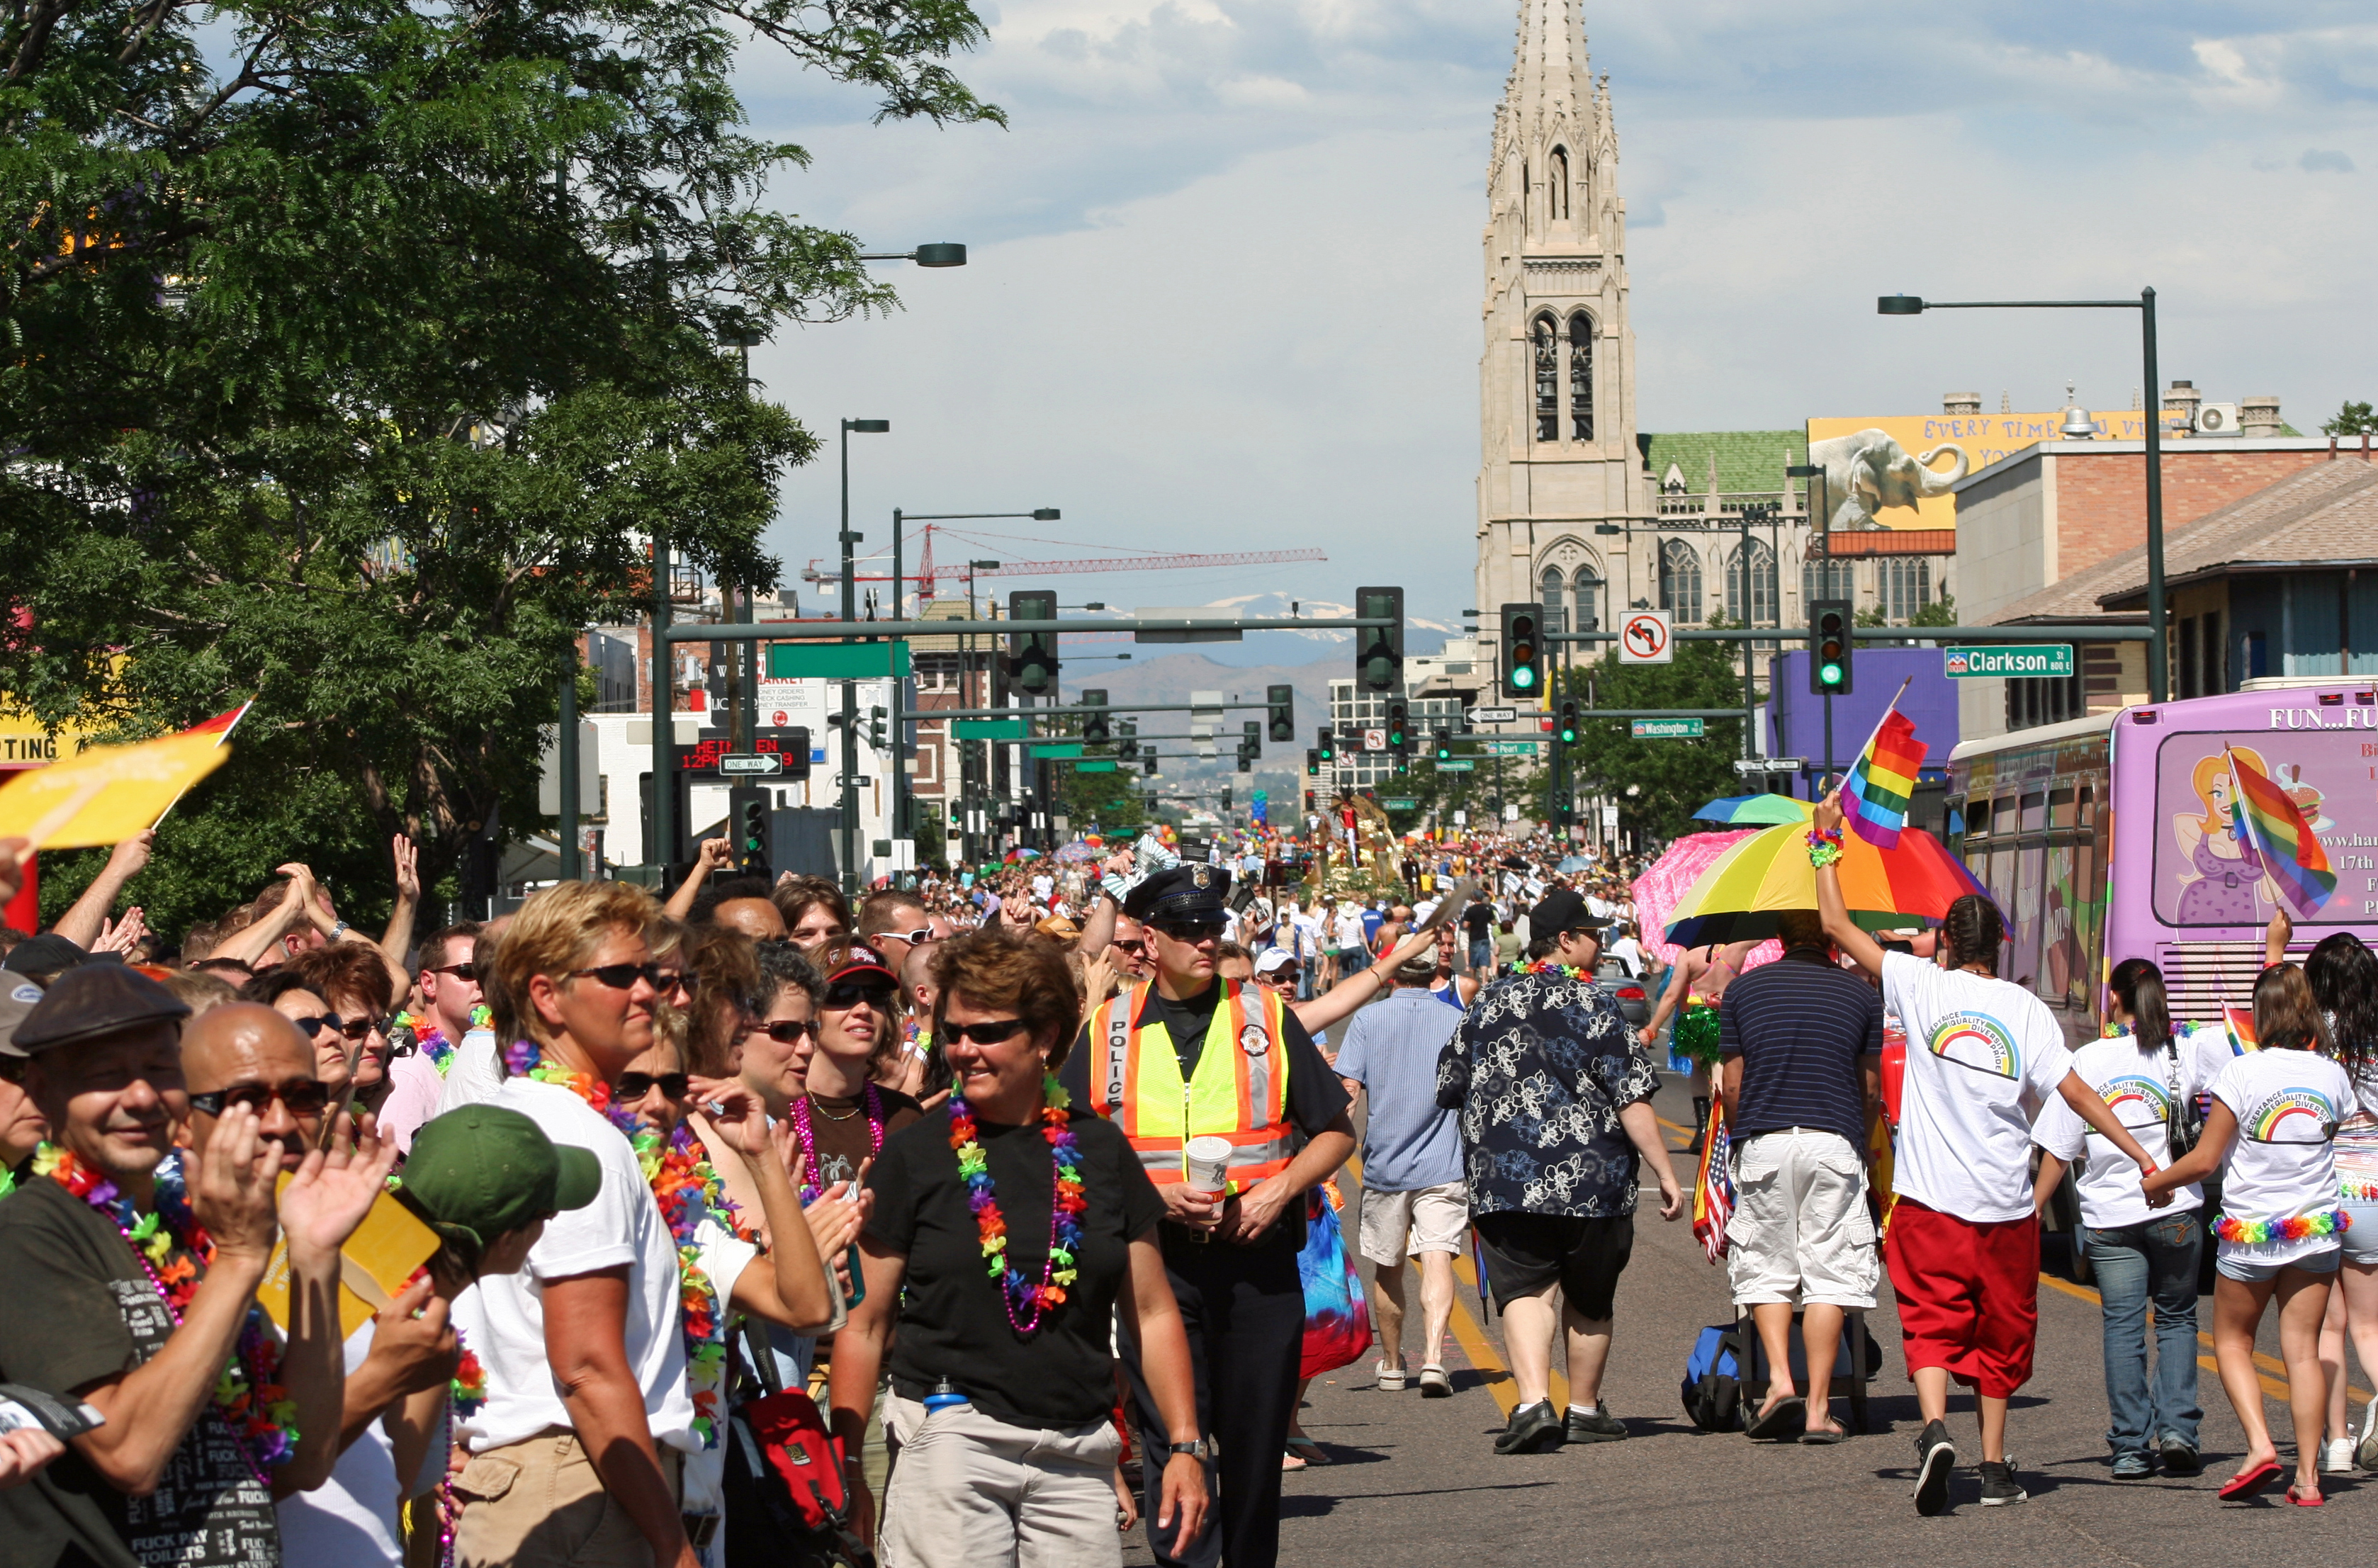 Pridefest Denver 2016 -from Wikipedia commons